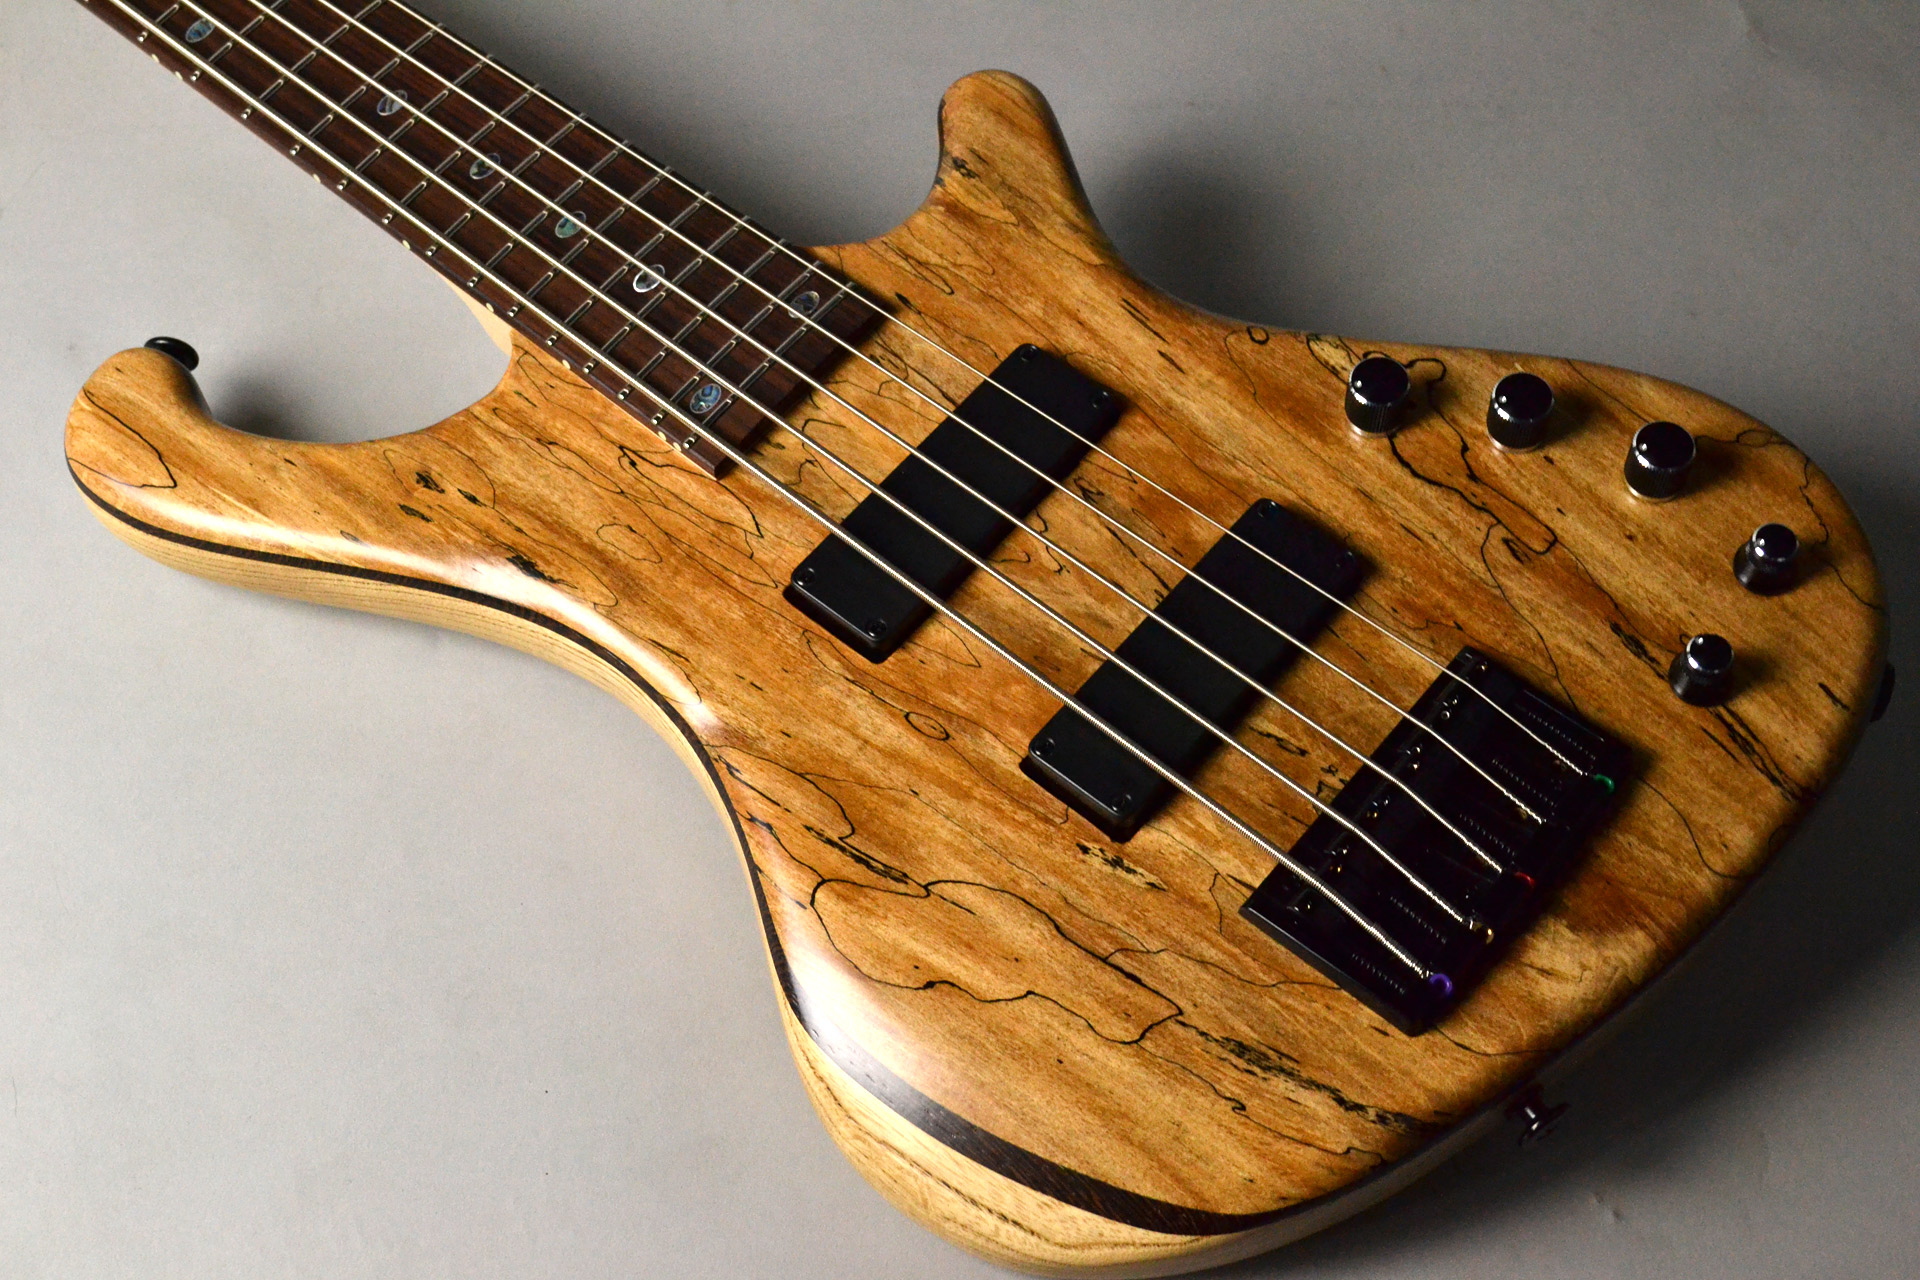 Dulake Flat 5st Spalted Maple/Ashのボディトップ-アップ画像